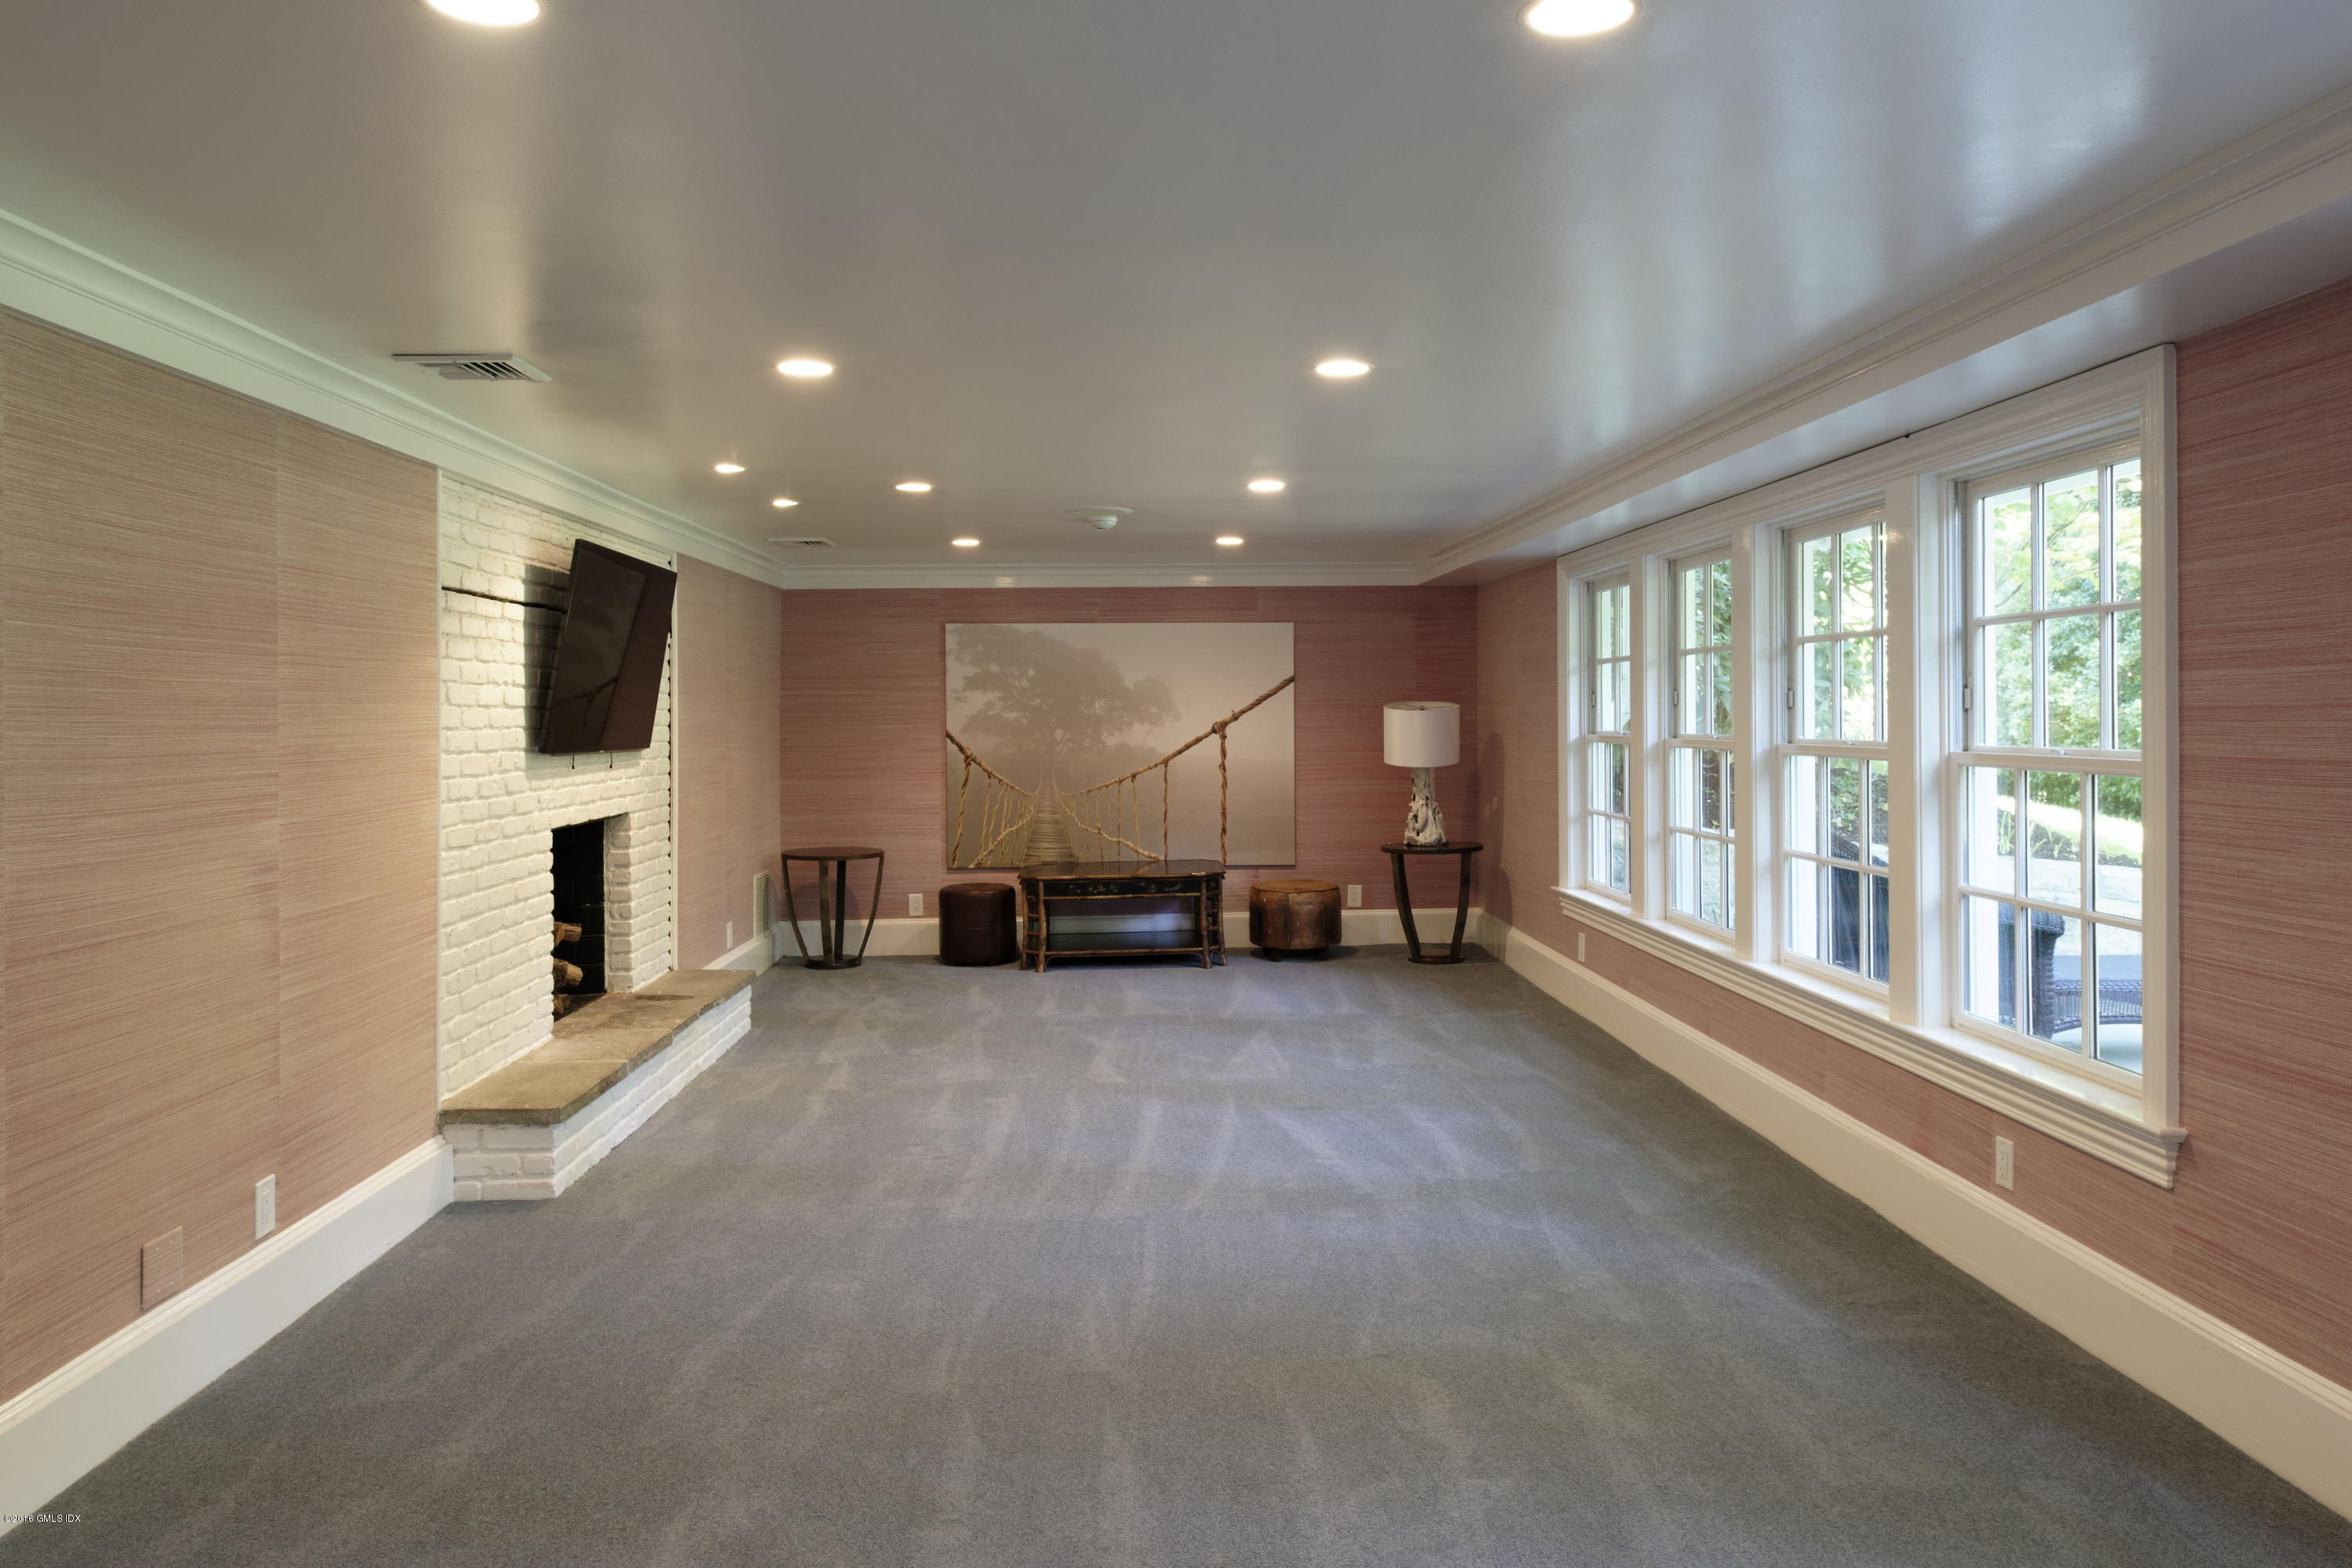 1 Butternut Hollow Road,Greenwich,Connecticut 06830,7 Bedrooms Bedrooms,8 BathroomsBathrooms,Single family,Butternut Hollow,105051